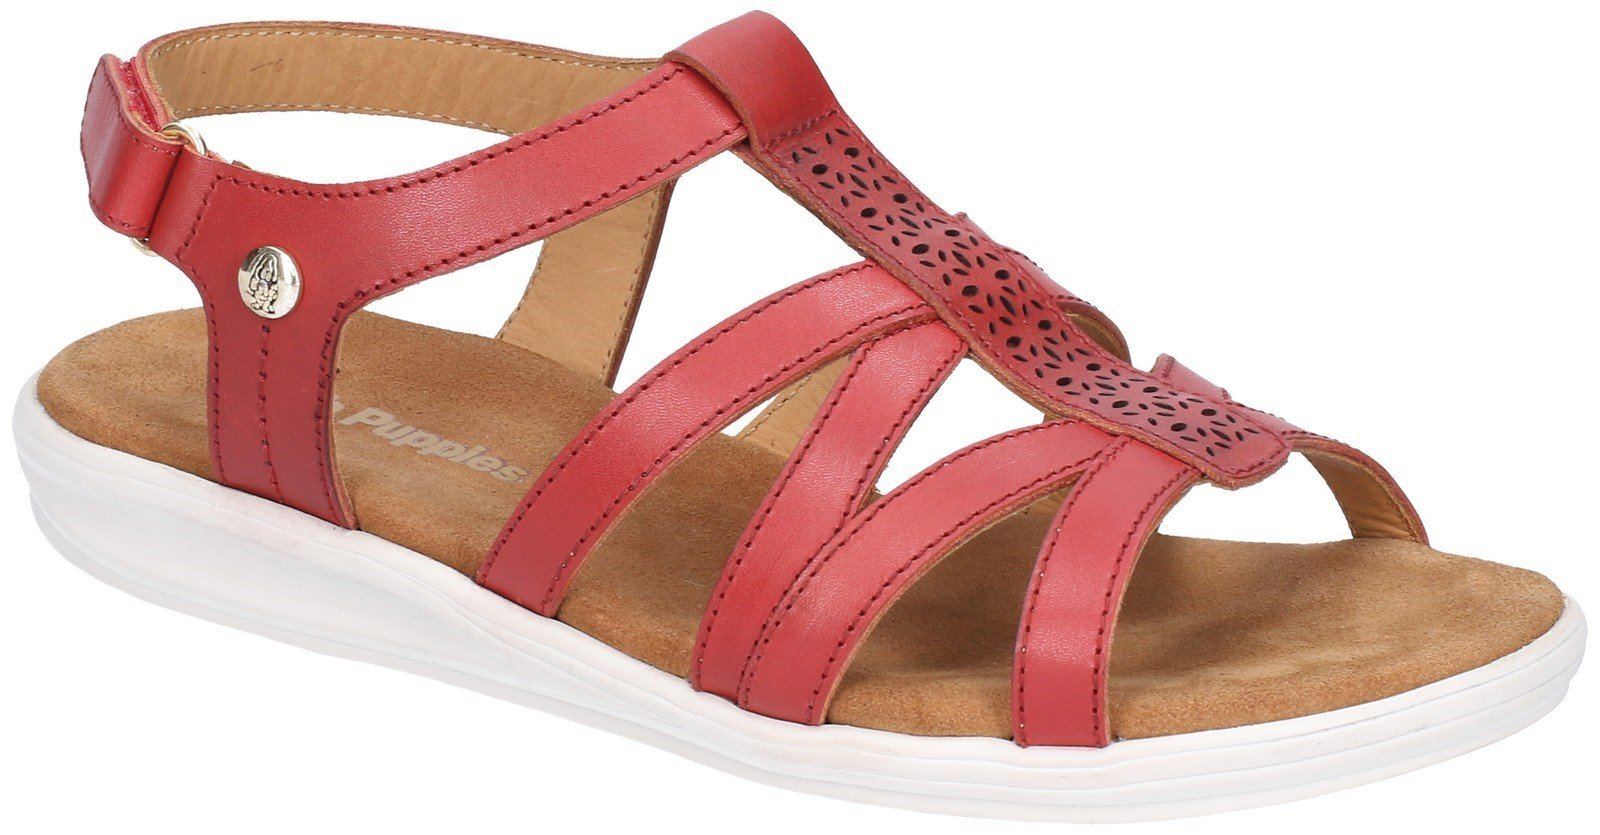 Hush Puppies Women's Callie Slingback Sandal Various Colours 28390 - Red 3